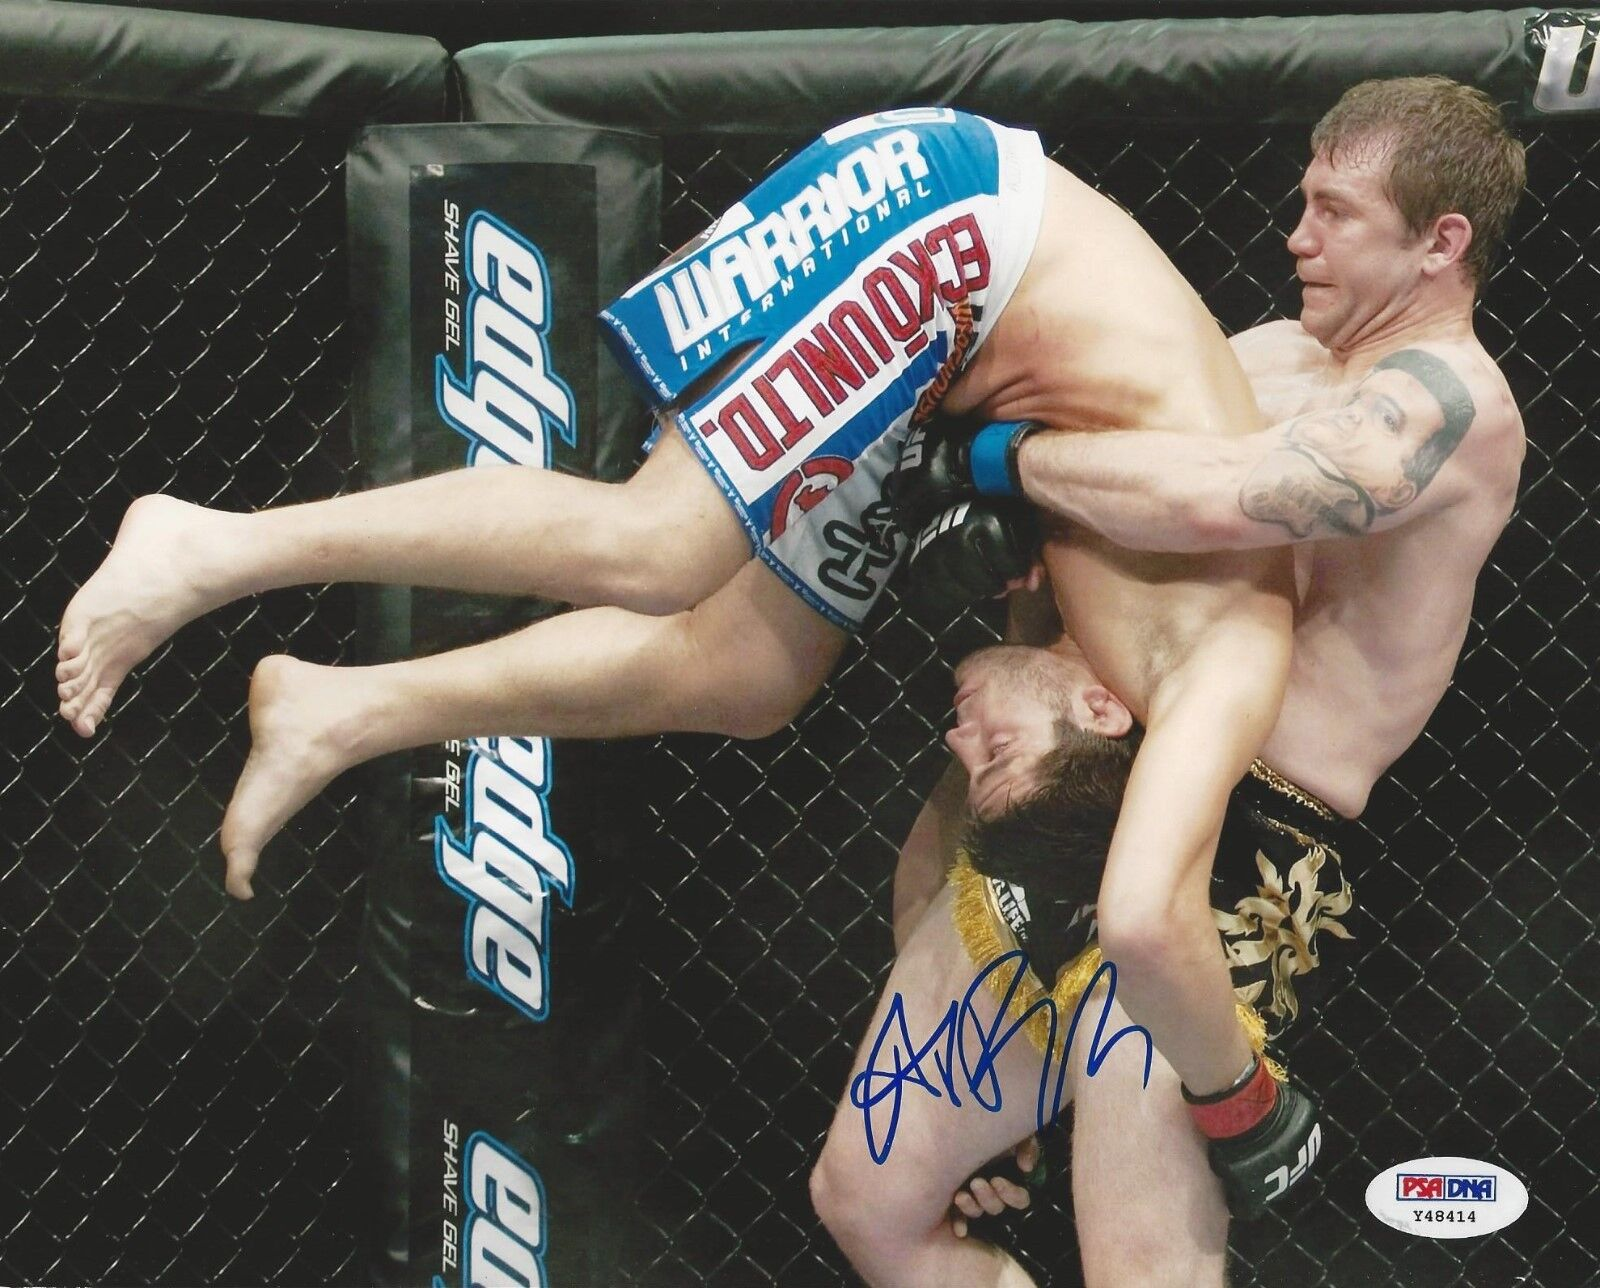 Alan Belcher UFC Fighter signed 8x10 photo PSA/DNA # Y48414